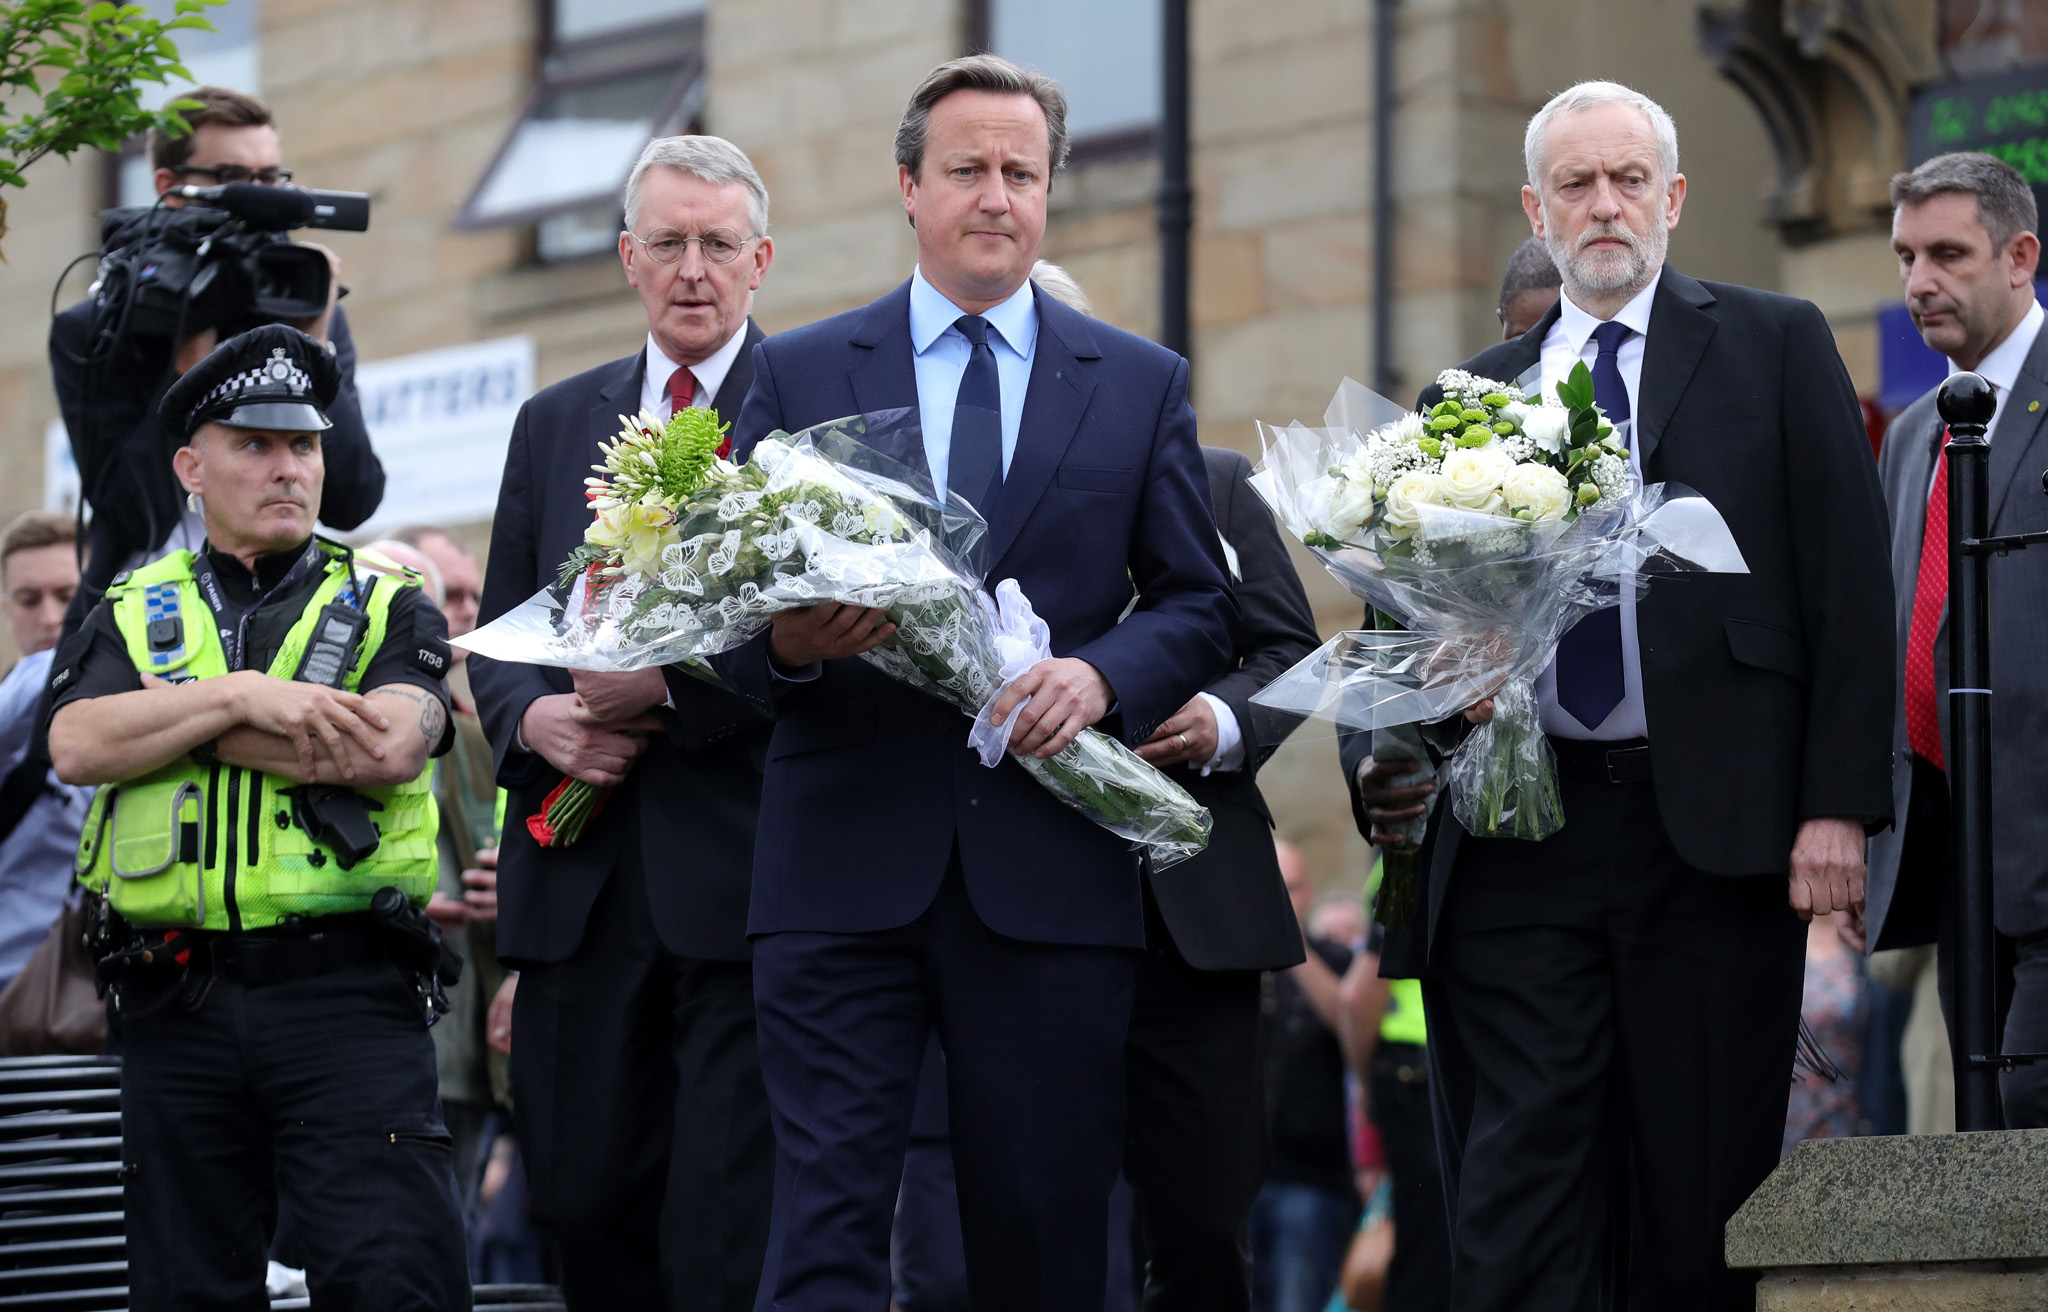 Tributes Paid To Murdered Labour MP Jo Cox...BIRSTALL, UNITED KINGDOM - JUNE 17:  Prime Minister David Cameron (C) and Labour Leader Jeremy Corbyn (R) arrive to pay their respects at the scene of the murder of Jo Cox, 41, Labour MP for Batley and Spen, who was shot and stabbed yesterday at her constituency surgery, on June 17, 2016 in Birstall, United Kingdom. The Labour MP for Batley and Spen was about to hold her weekly constituency surgery in Birstall Library yesterday on June 16, 2016, when she was shot and stabbed in the street. A 52-year old man is being held in Police custody in connection with the death.  (Photo by Christopher Furlong/Getty Images)